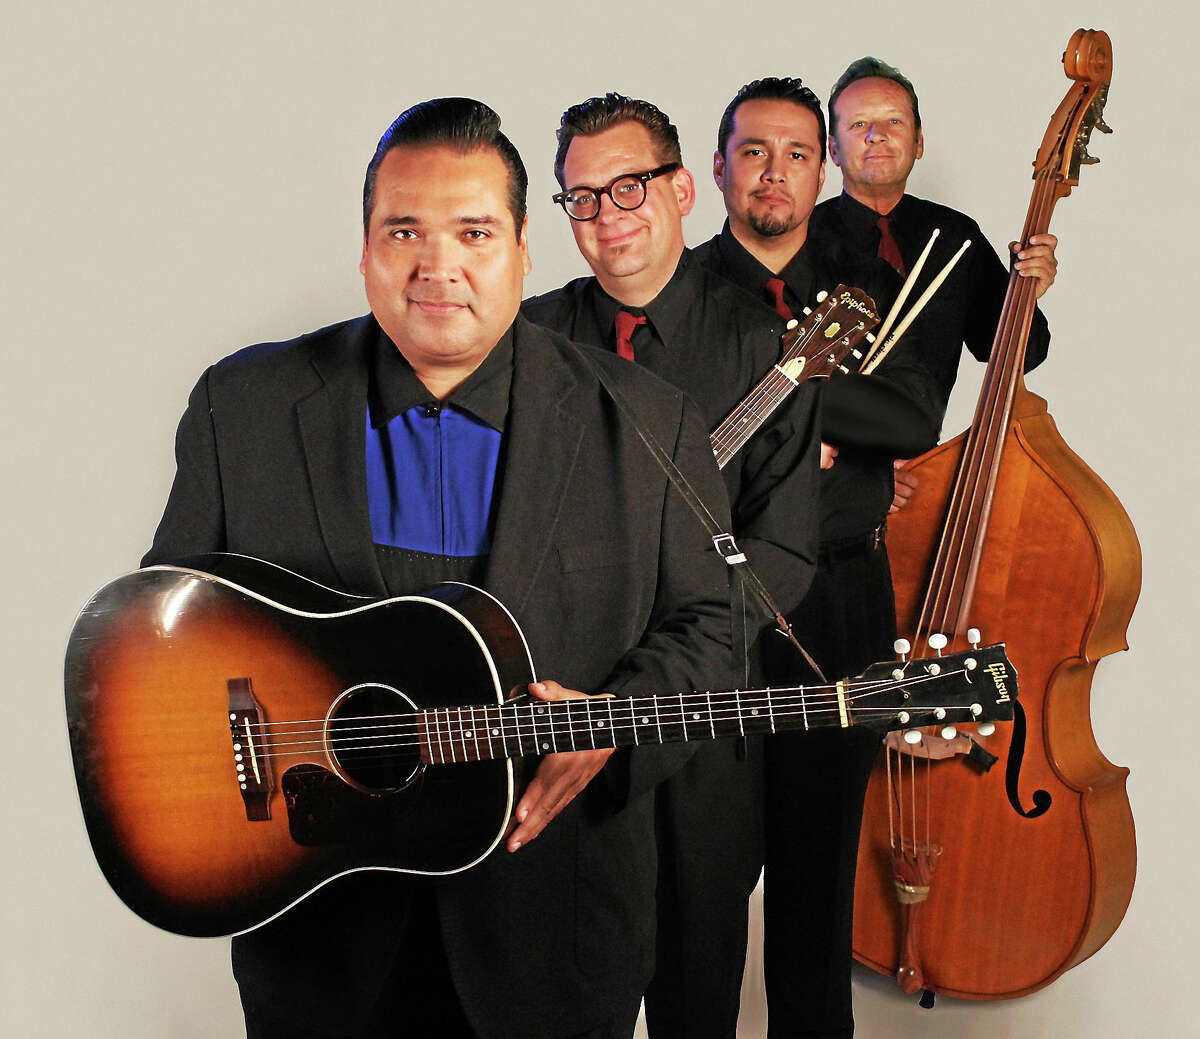 Big Sandy & his Fly-Right Boys will be at Cafe Nine, 250 State St. in New Haven, Tuesday night.